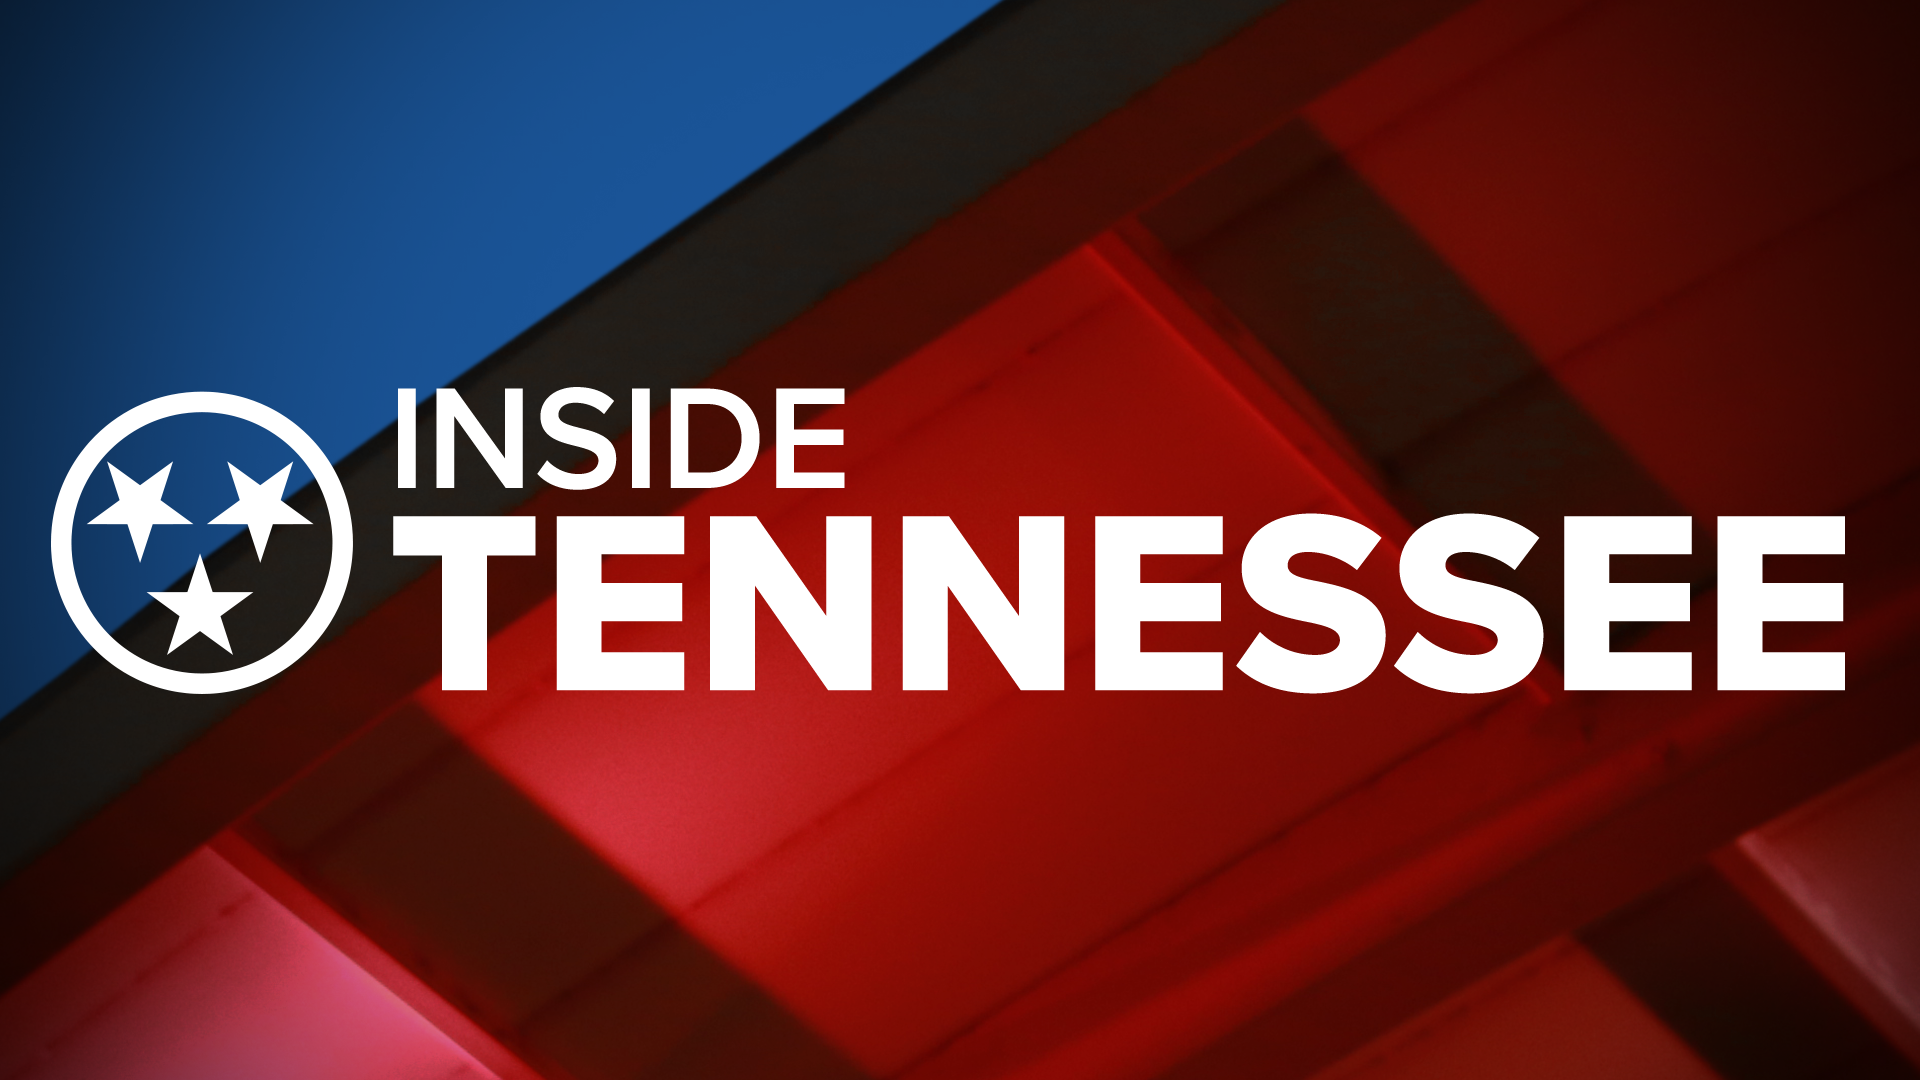 Inside Tennessee